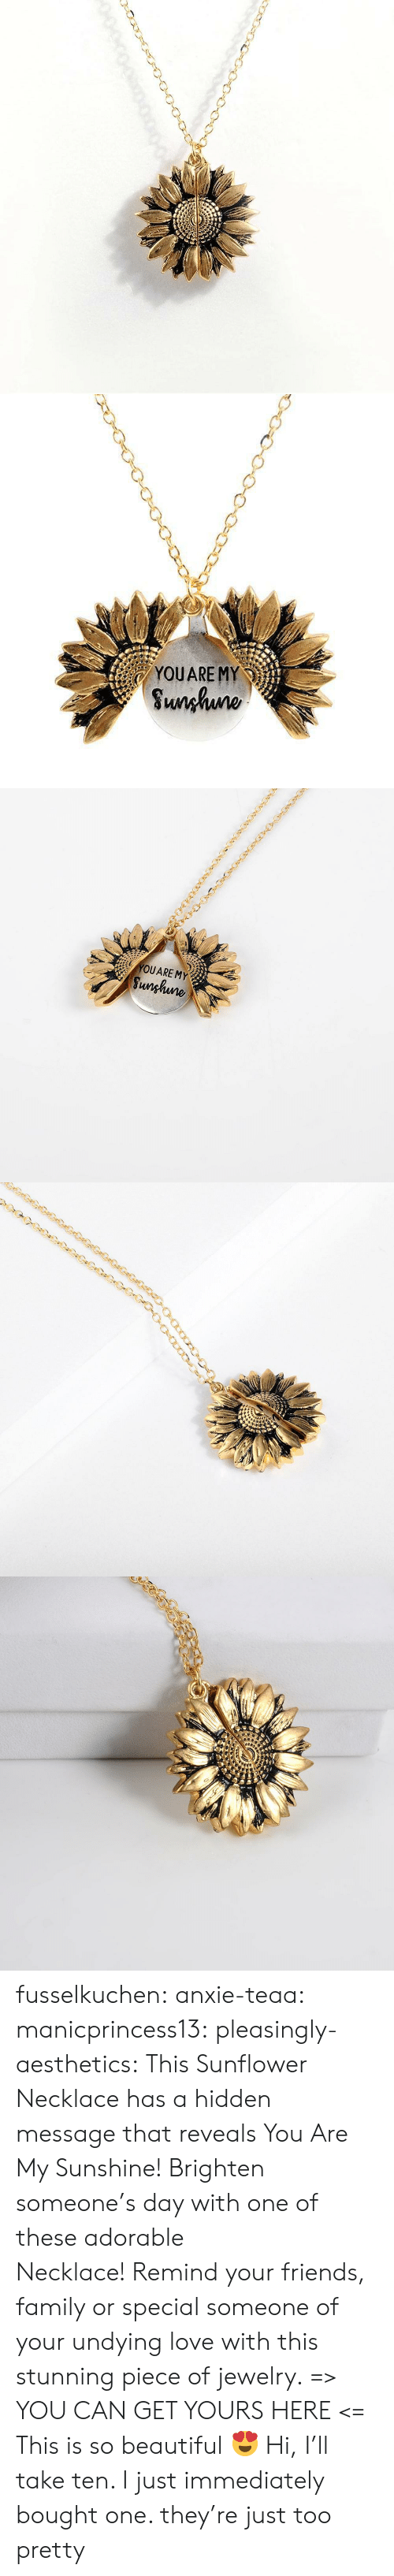 Beautiful, Family, and Friends: YOUARE MY  Sunhuno   YOUARE MY  Sunghune fusselkuchen:  anxie-teaa:  manicprincess13:  pleasingly-aesthetics: This Sunflower Necklace has a hidden message that reveals You Are My Sunshine! Brighten someone's day with one of these adorable Necklace!Remind your friends, family or special someone of your undying love with this stunning piece of jewelry. => YOU CAN GET YOURS HERE <=   This is so beautiful 😍   Hi, I'll take ten.   I just immediately bought one. they're just too pretty